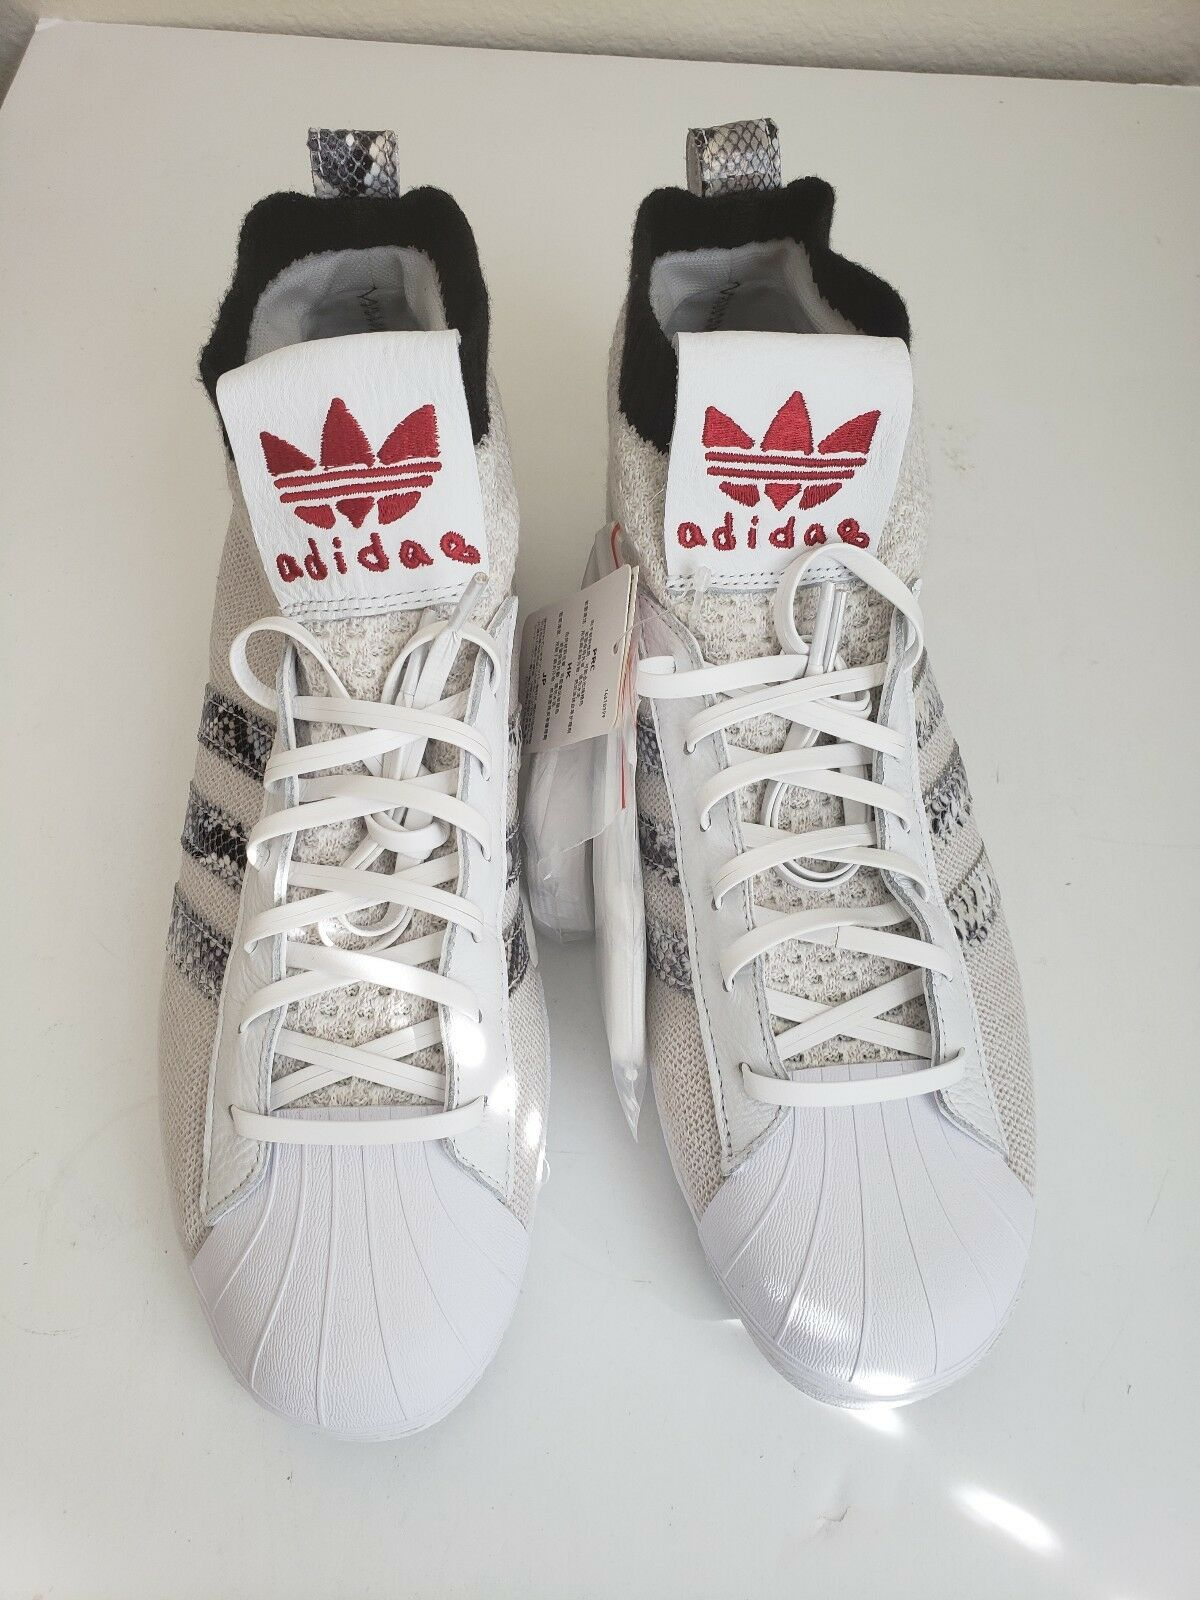 5b776c1ff5c80 Adidas Originals Originals Originals UAS Ultra Star United Arrows Size 10.5  B37111 Snake White cb0aac